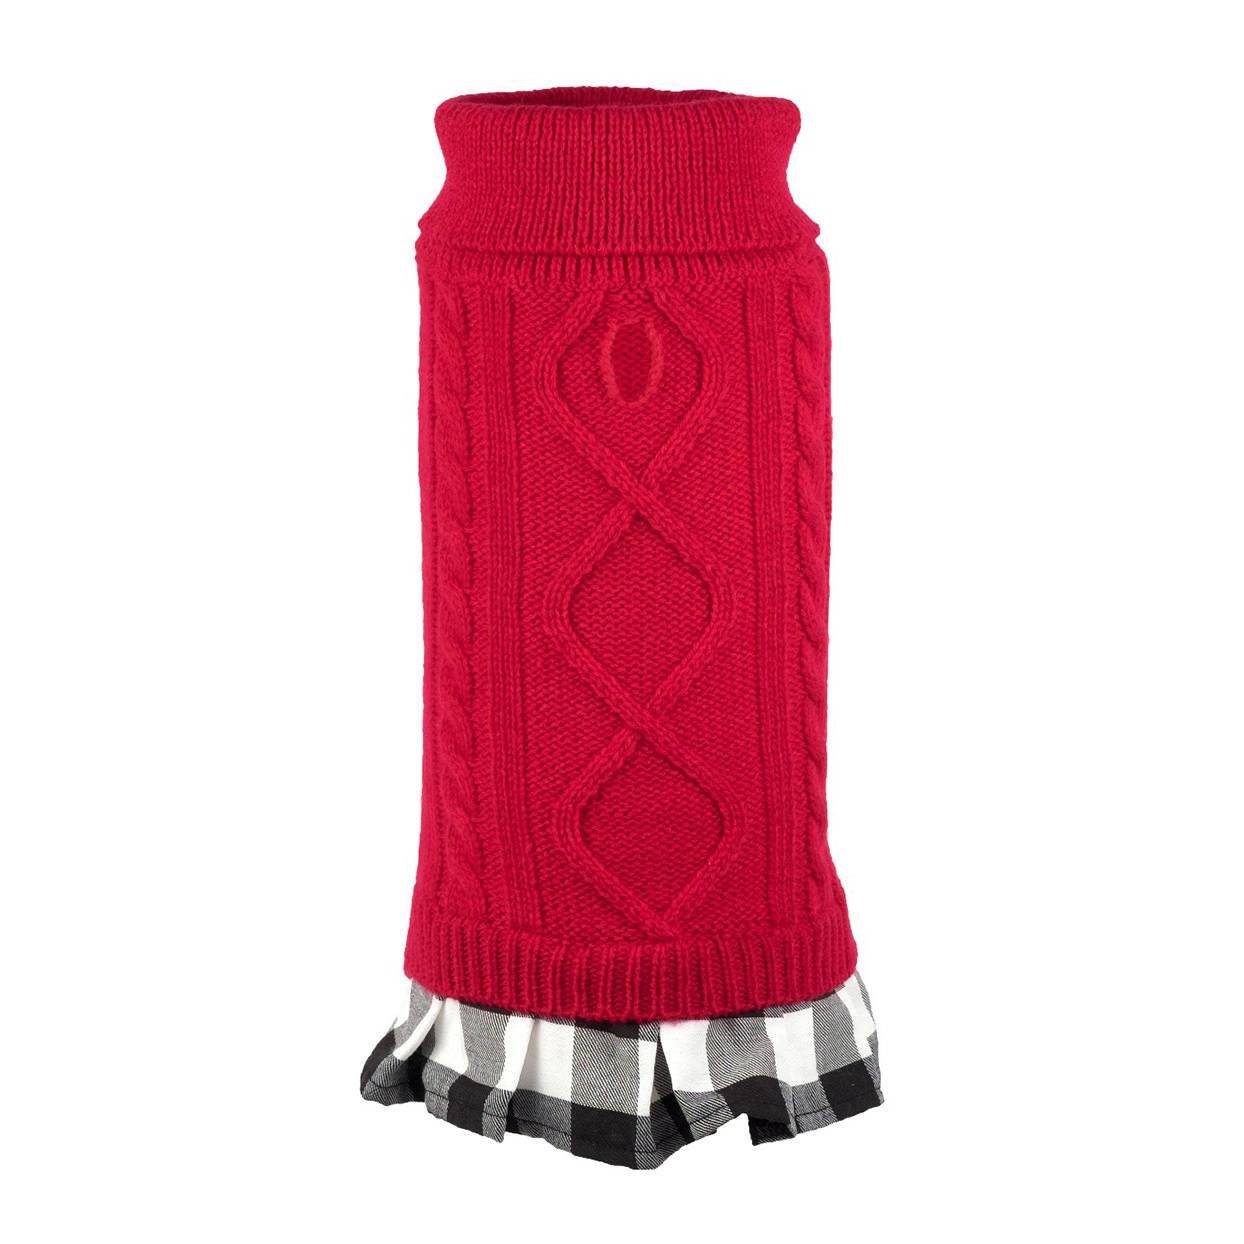 The Worthy Dog Plaid Layered-Look Two-fer Turtleneck Sweater Dress on a white background